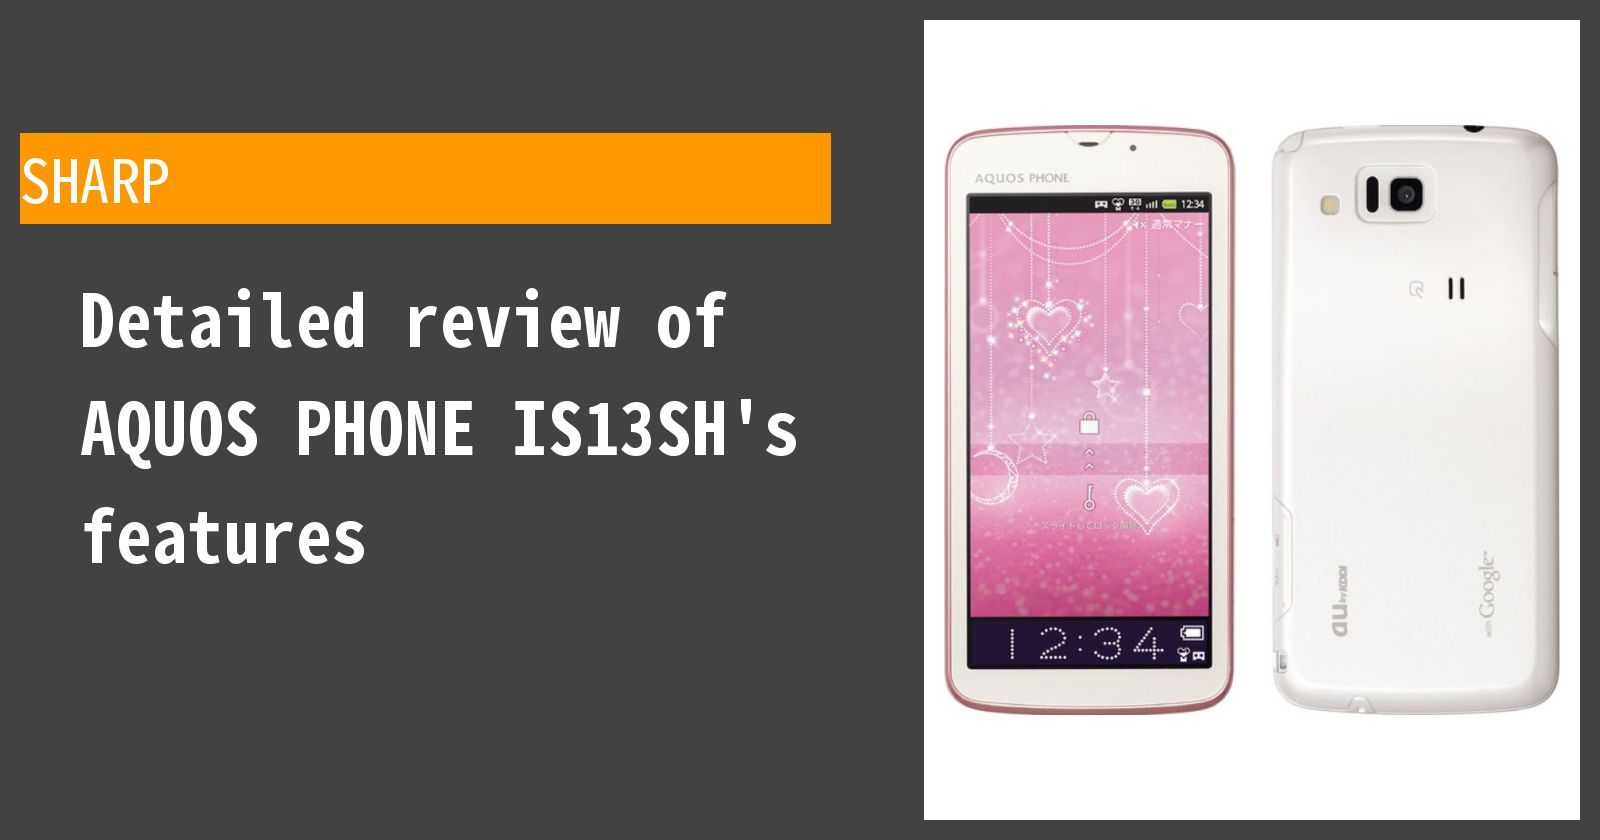 Detailed review of AQUOS PHONE IS13SH au's features